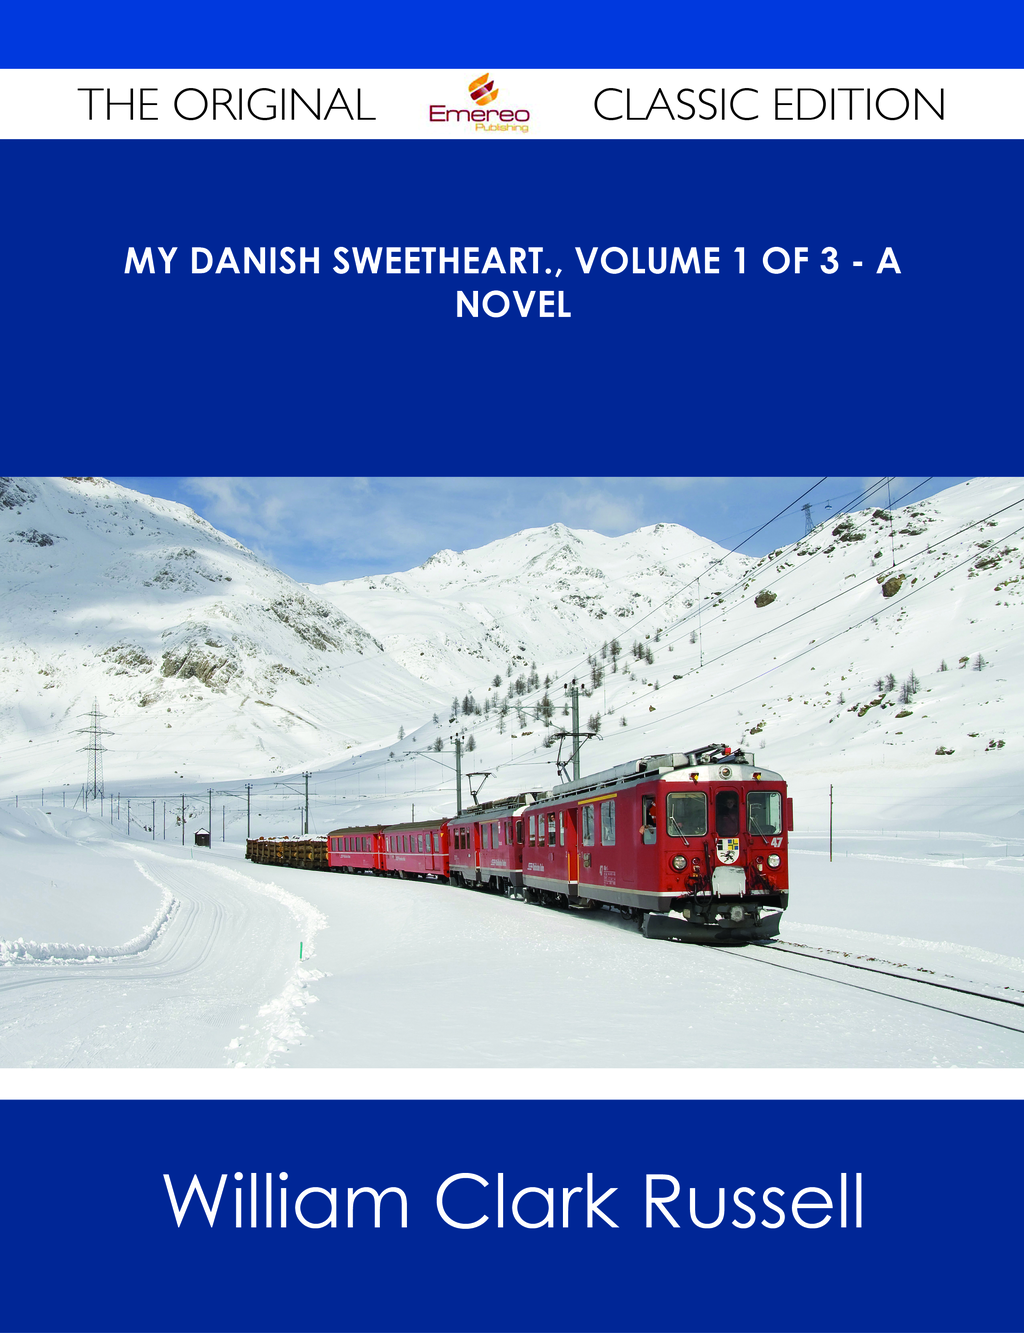 My Danish Sweetheart., Volume 1 of 3 - A Novel - The Original Classic Edition